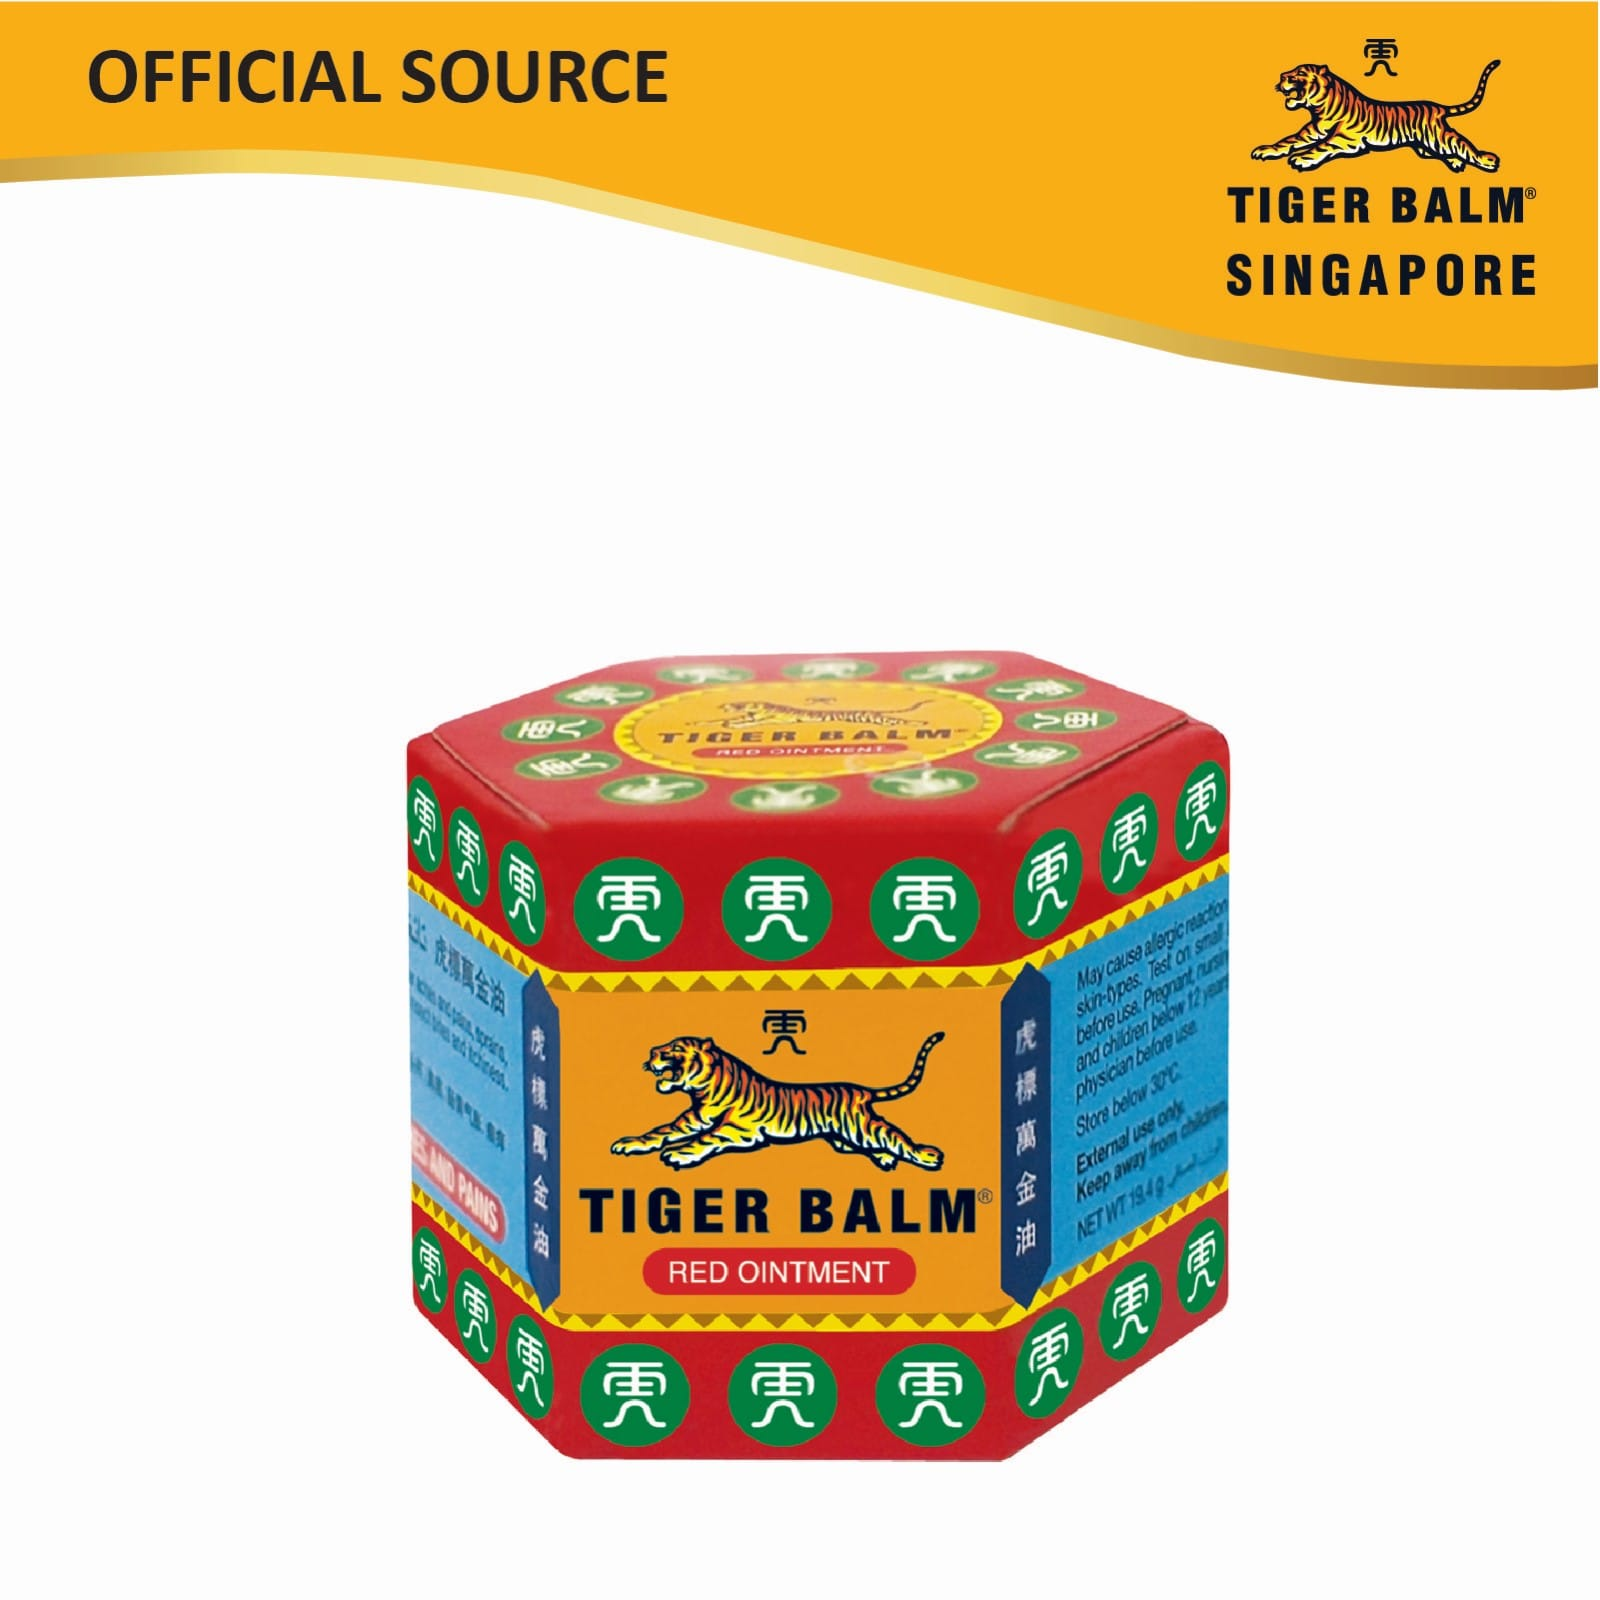 Tiger Balm Red Ointment 19g Cold Storage Singapore